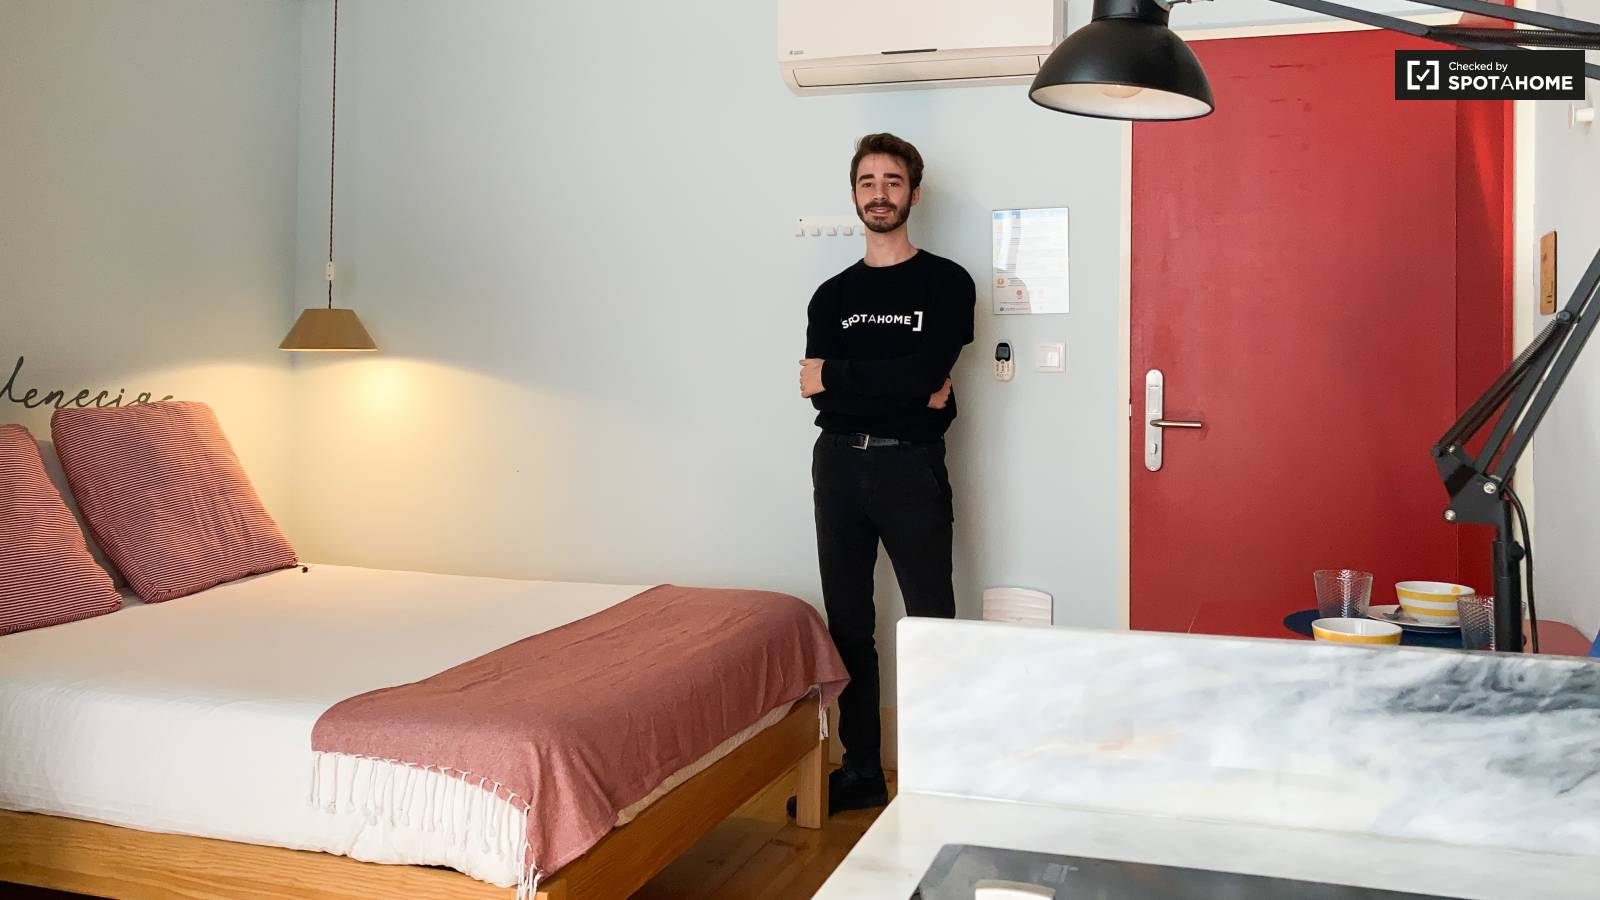 Checked by Gonçalo from Spotahome